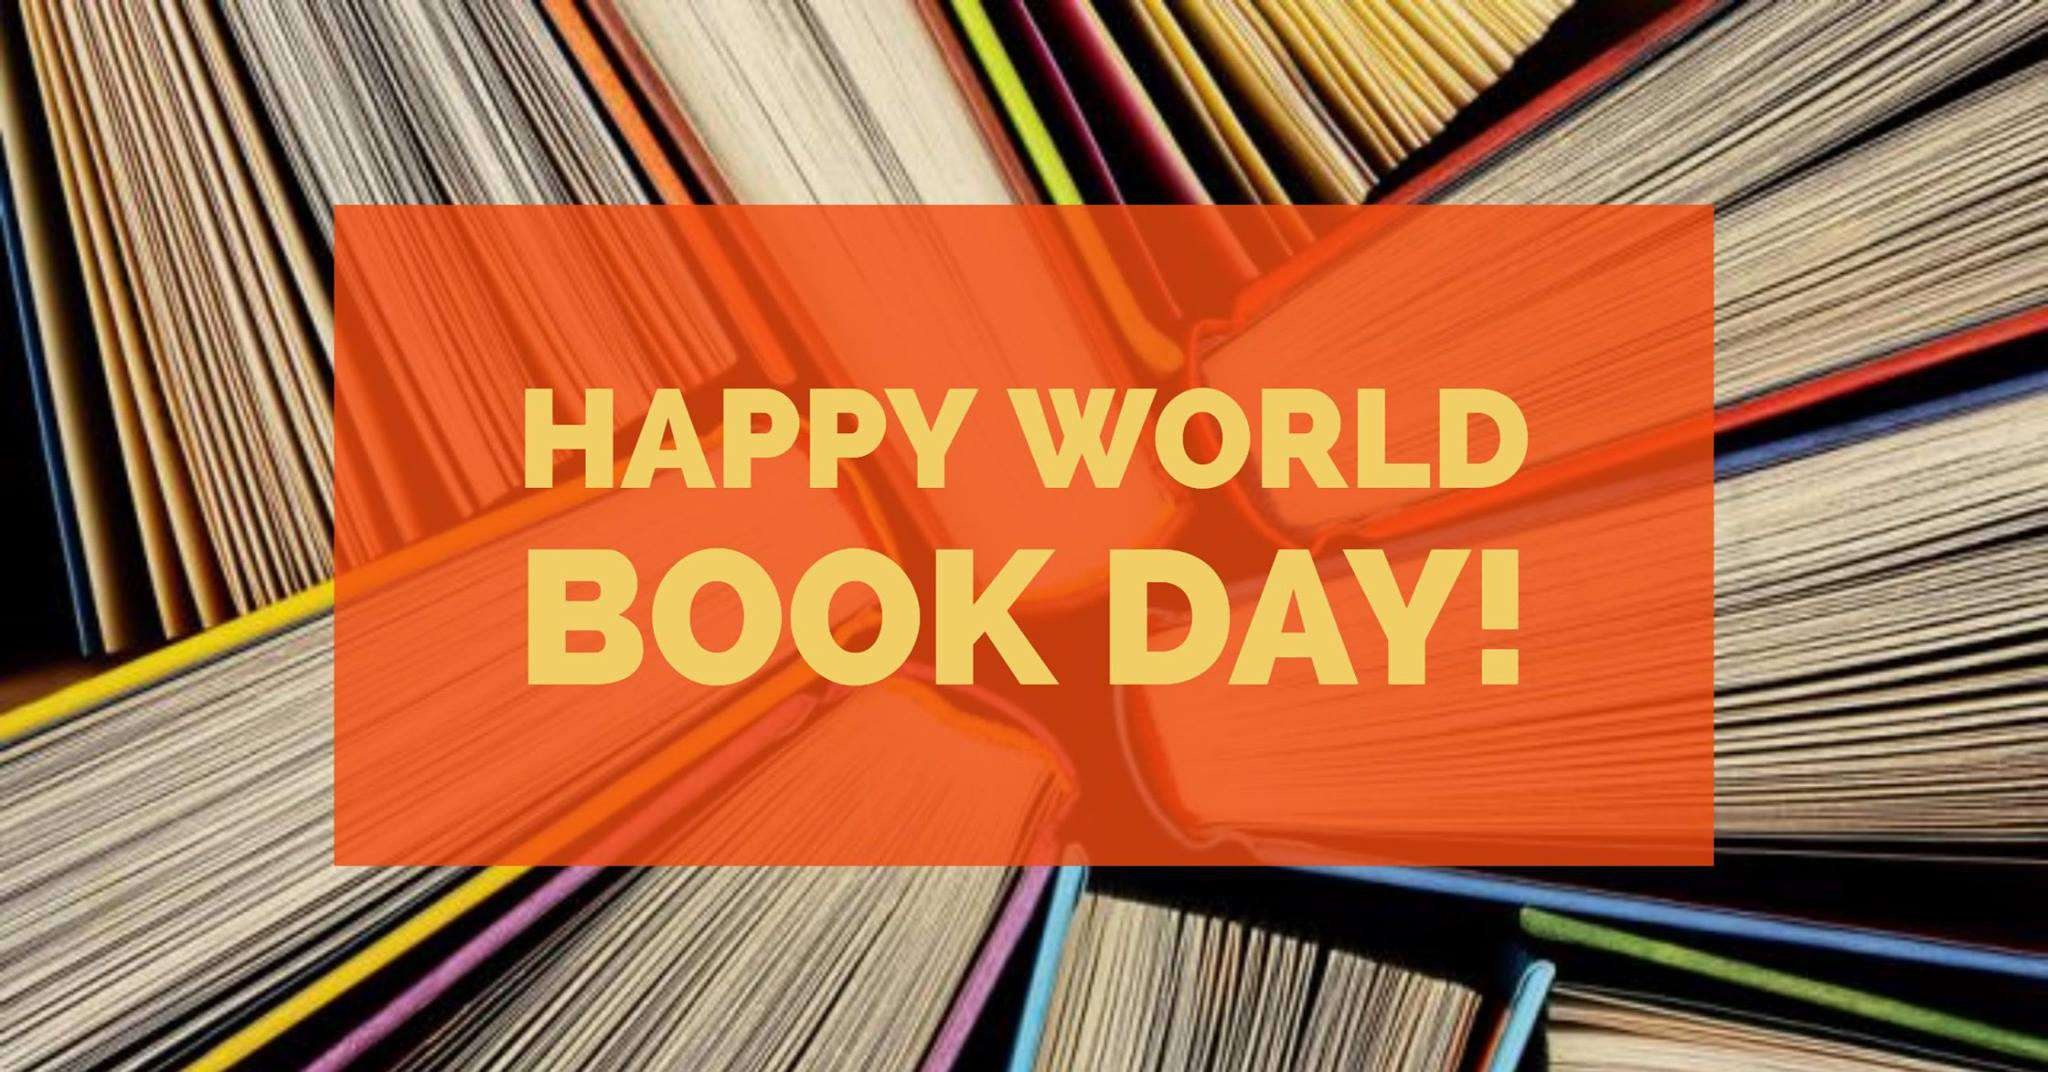 World Book Day Wishes pics free download